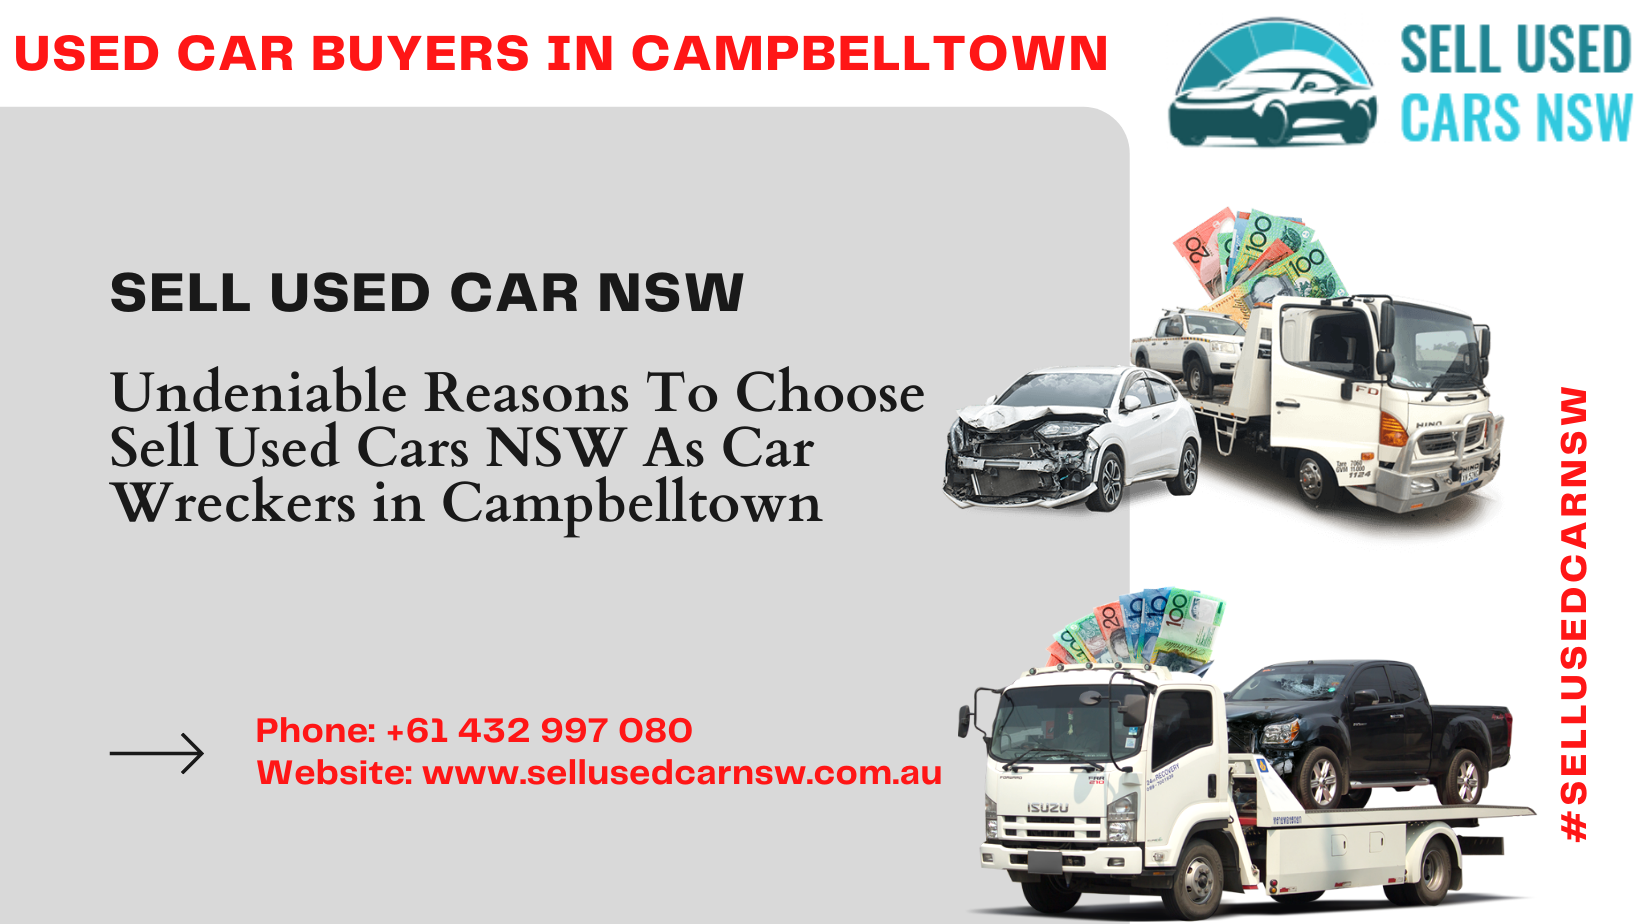 Undeniable Reasons To Choose Sell Used Cars NSW As Car Wreckers in Campbelltown